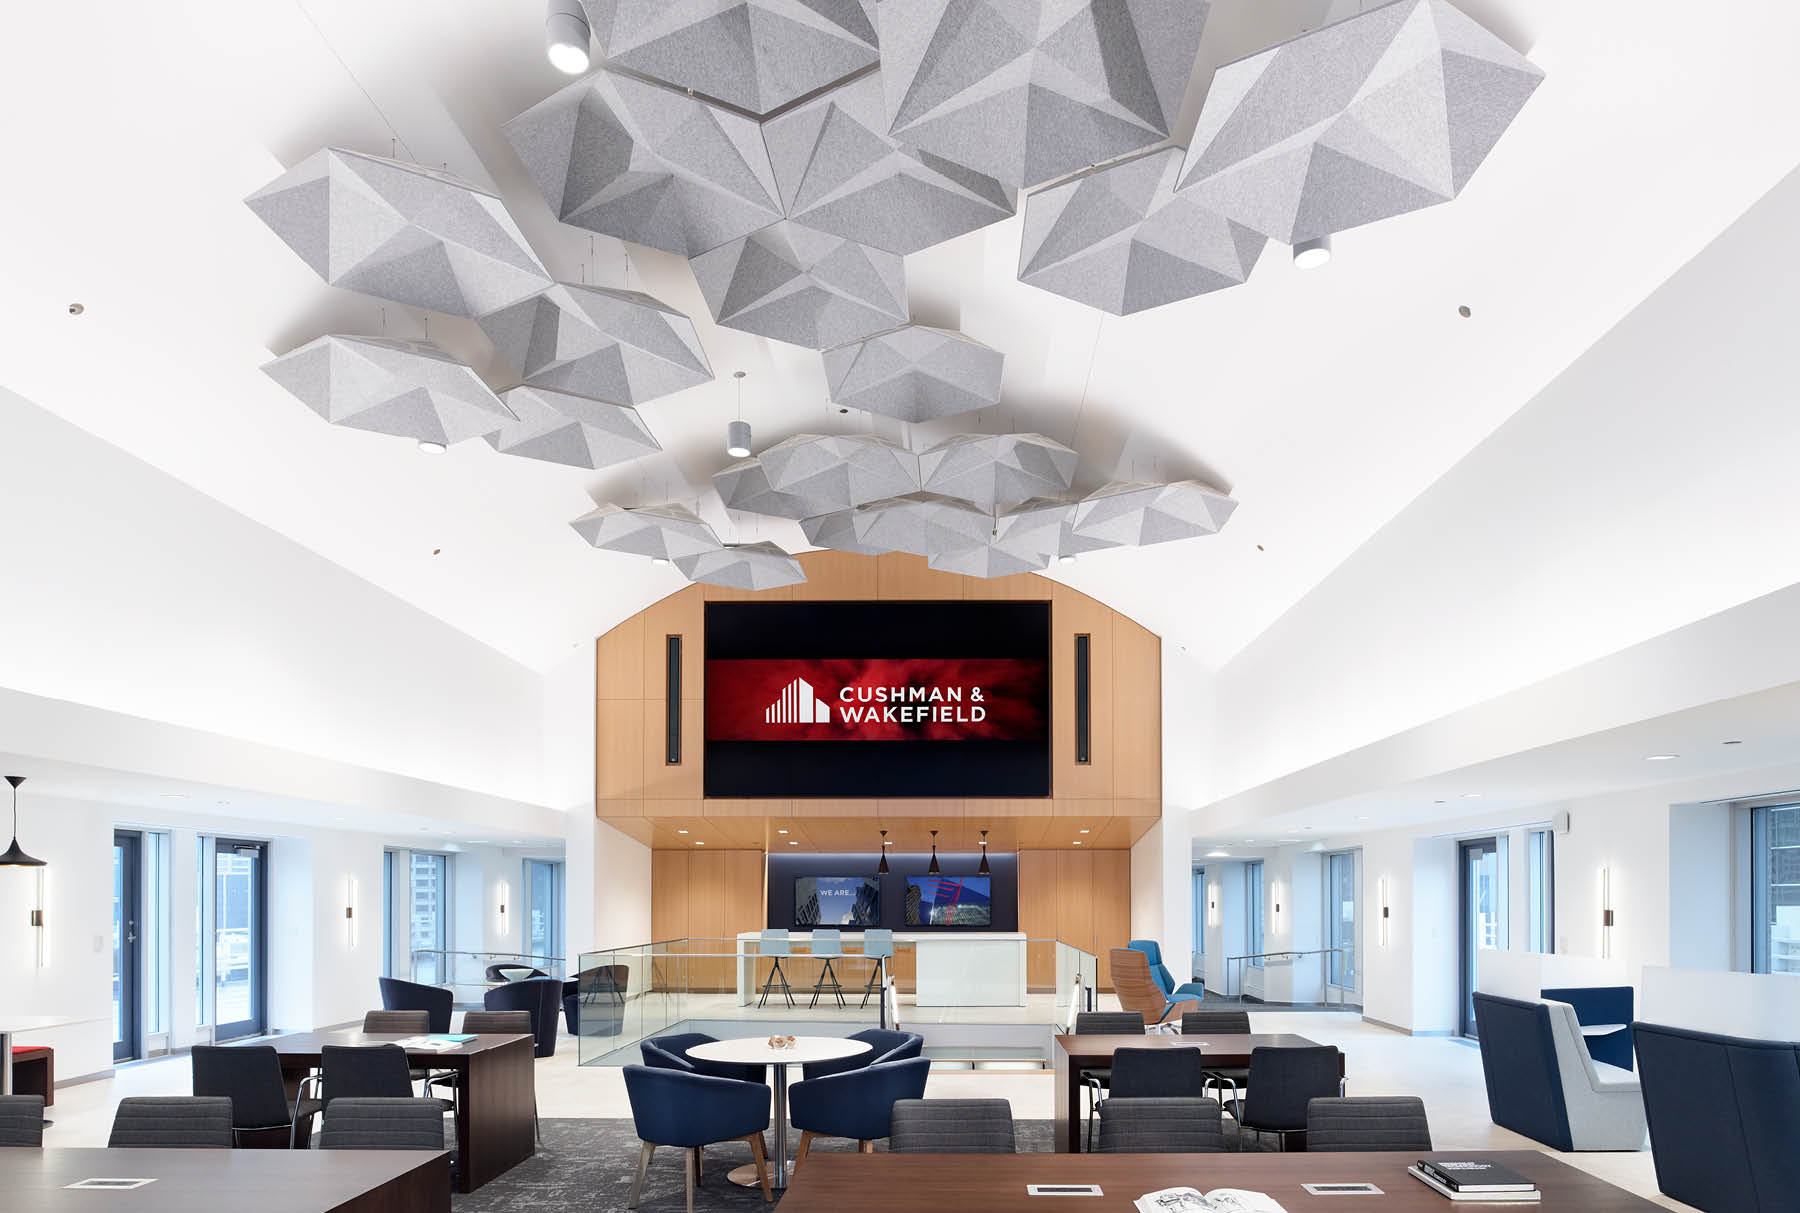 SoundStar® faceted, acoustical system installed in Cushman and Wakefield.